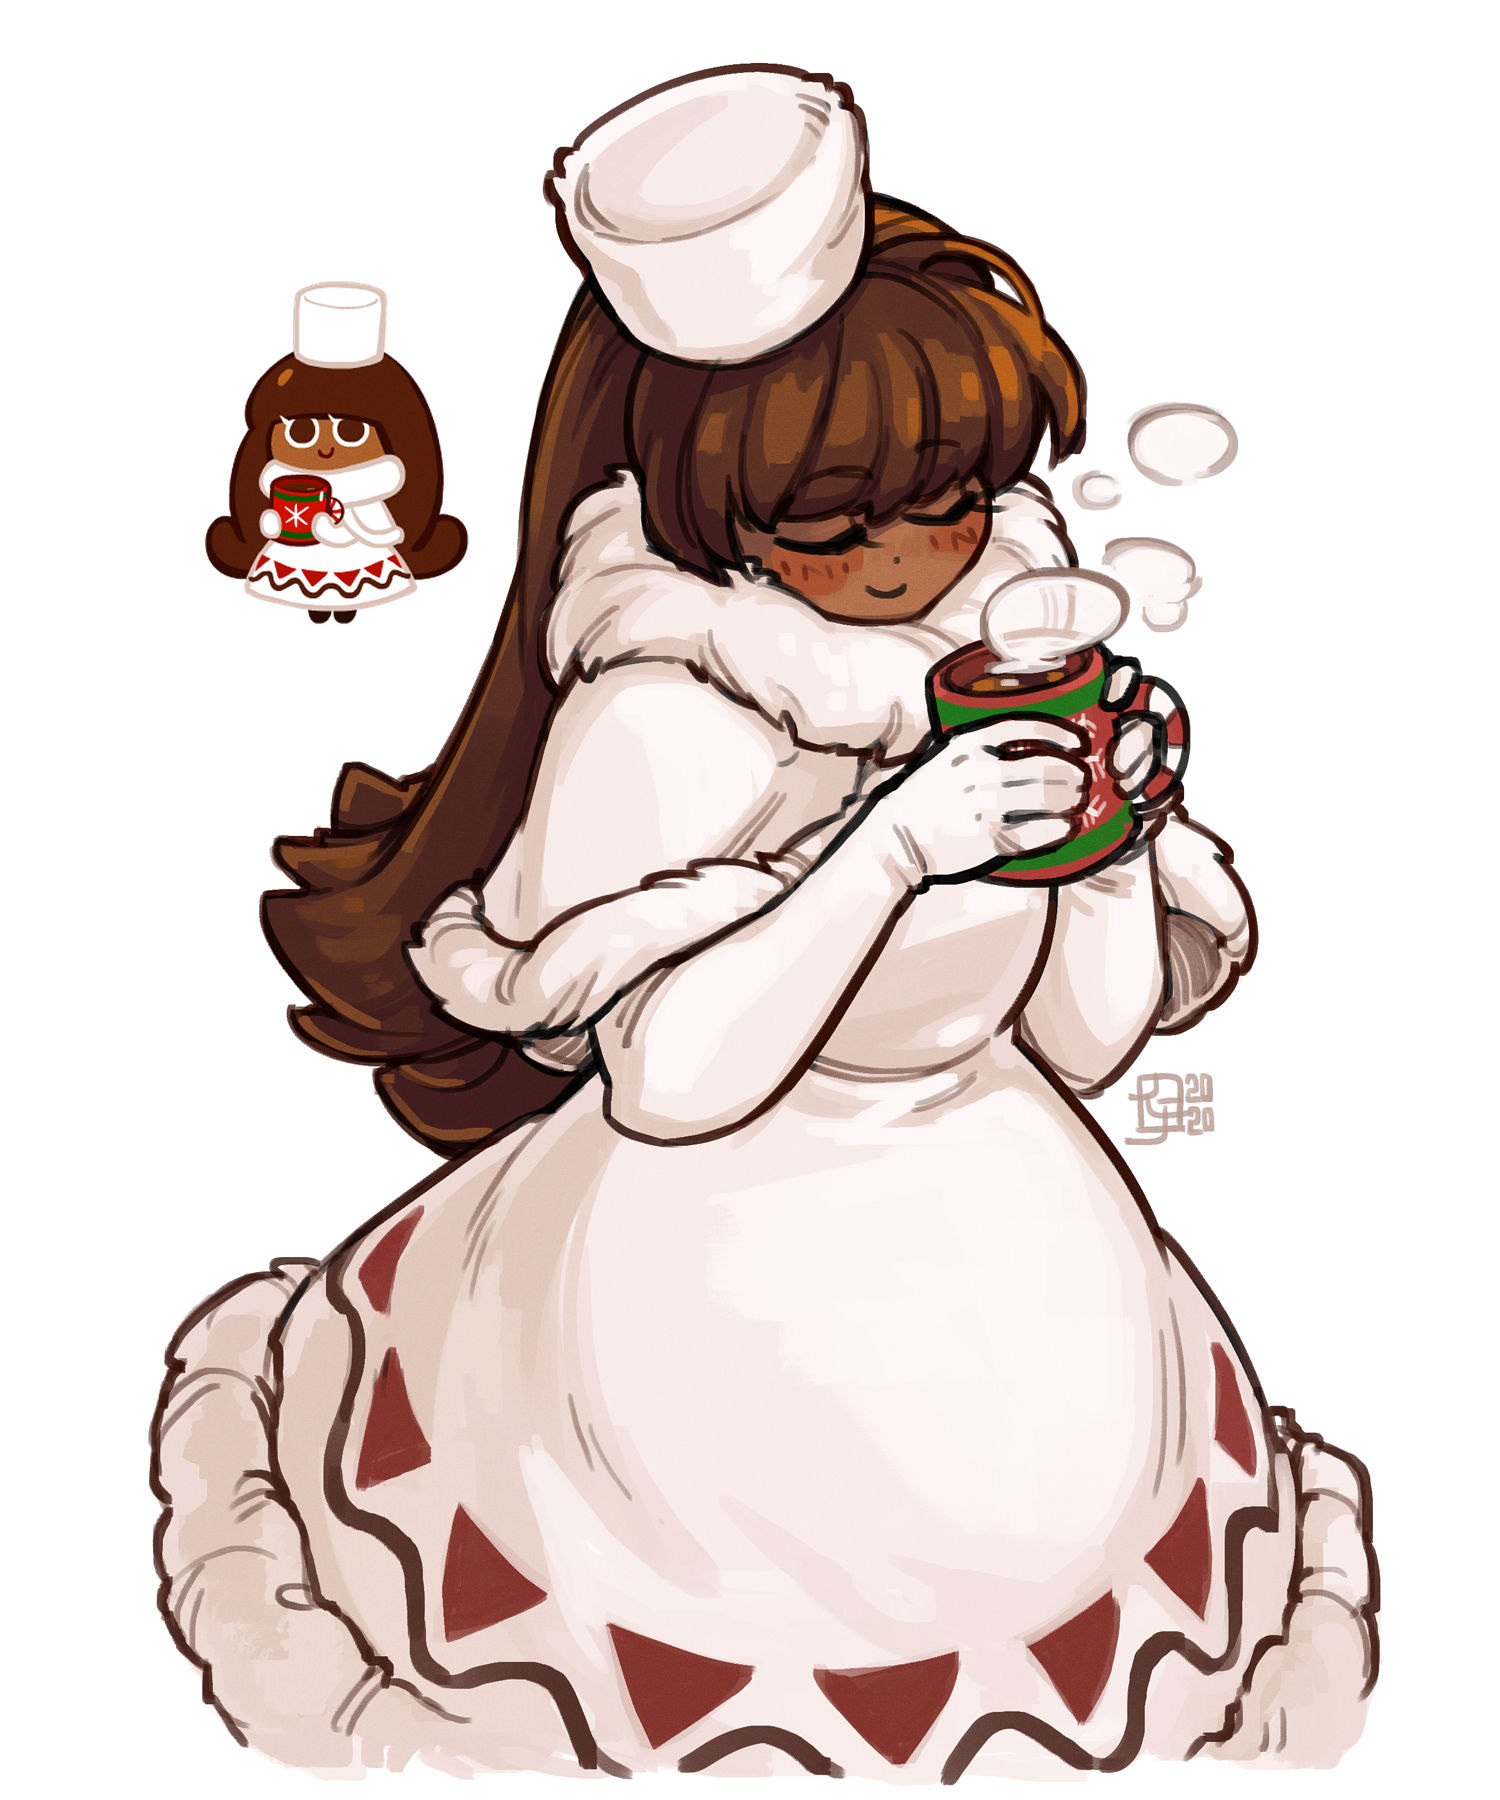 [sketching] Cocoa Cookie